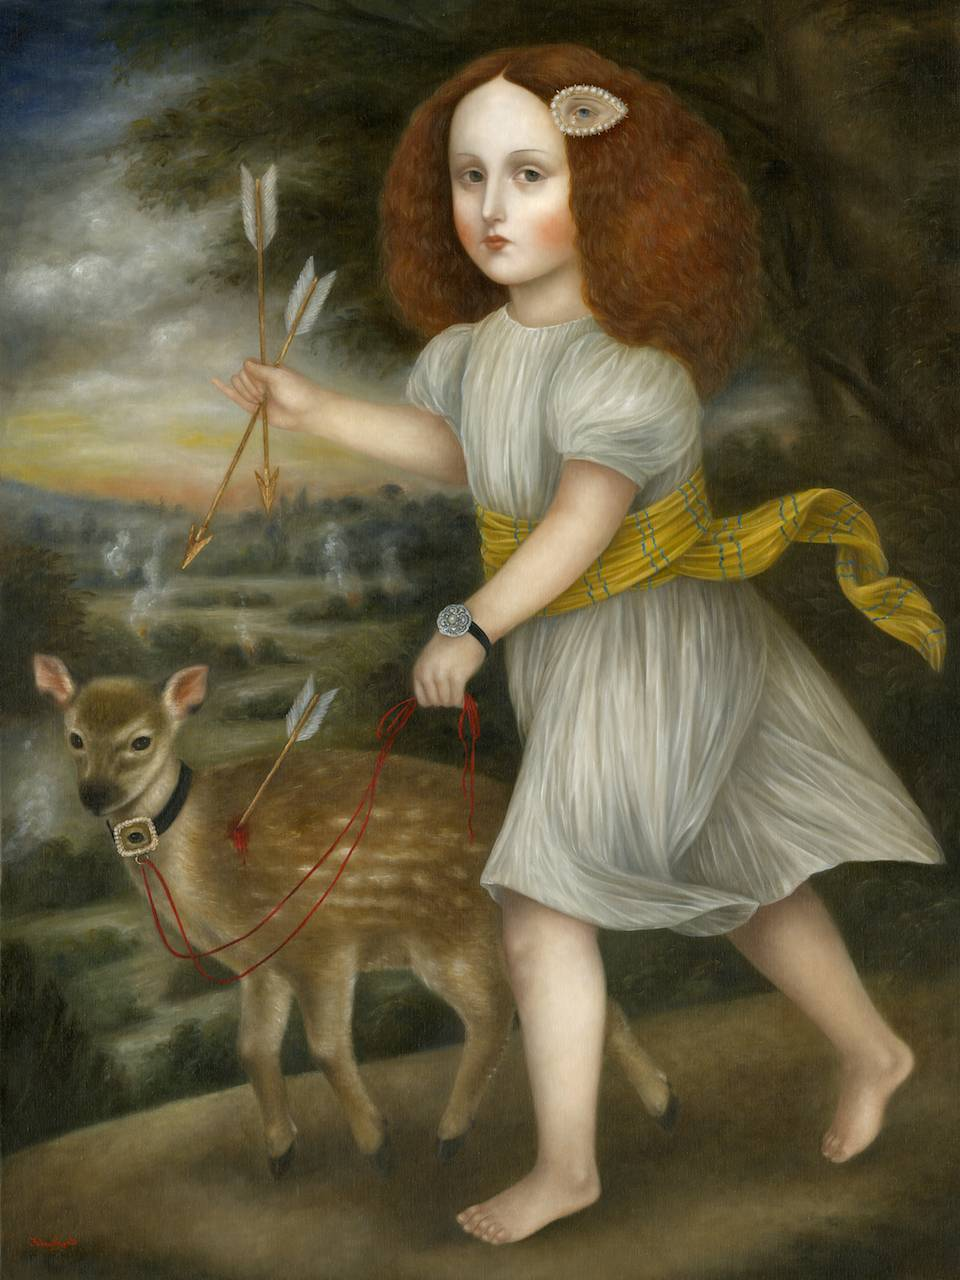 Fatima Ronquillo / Meyer Gallery